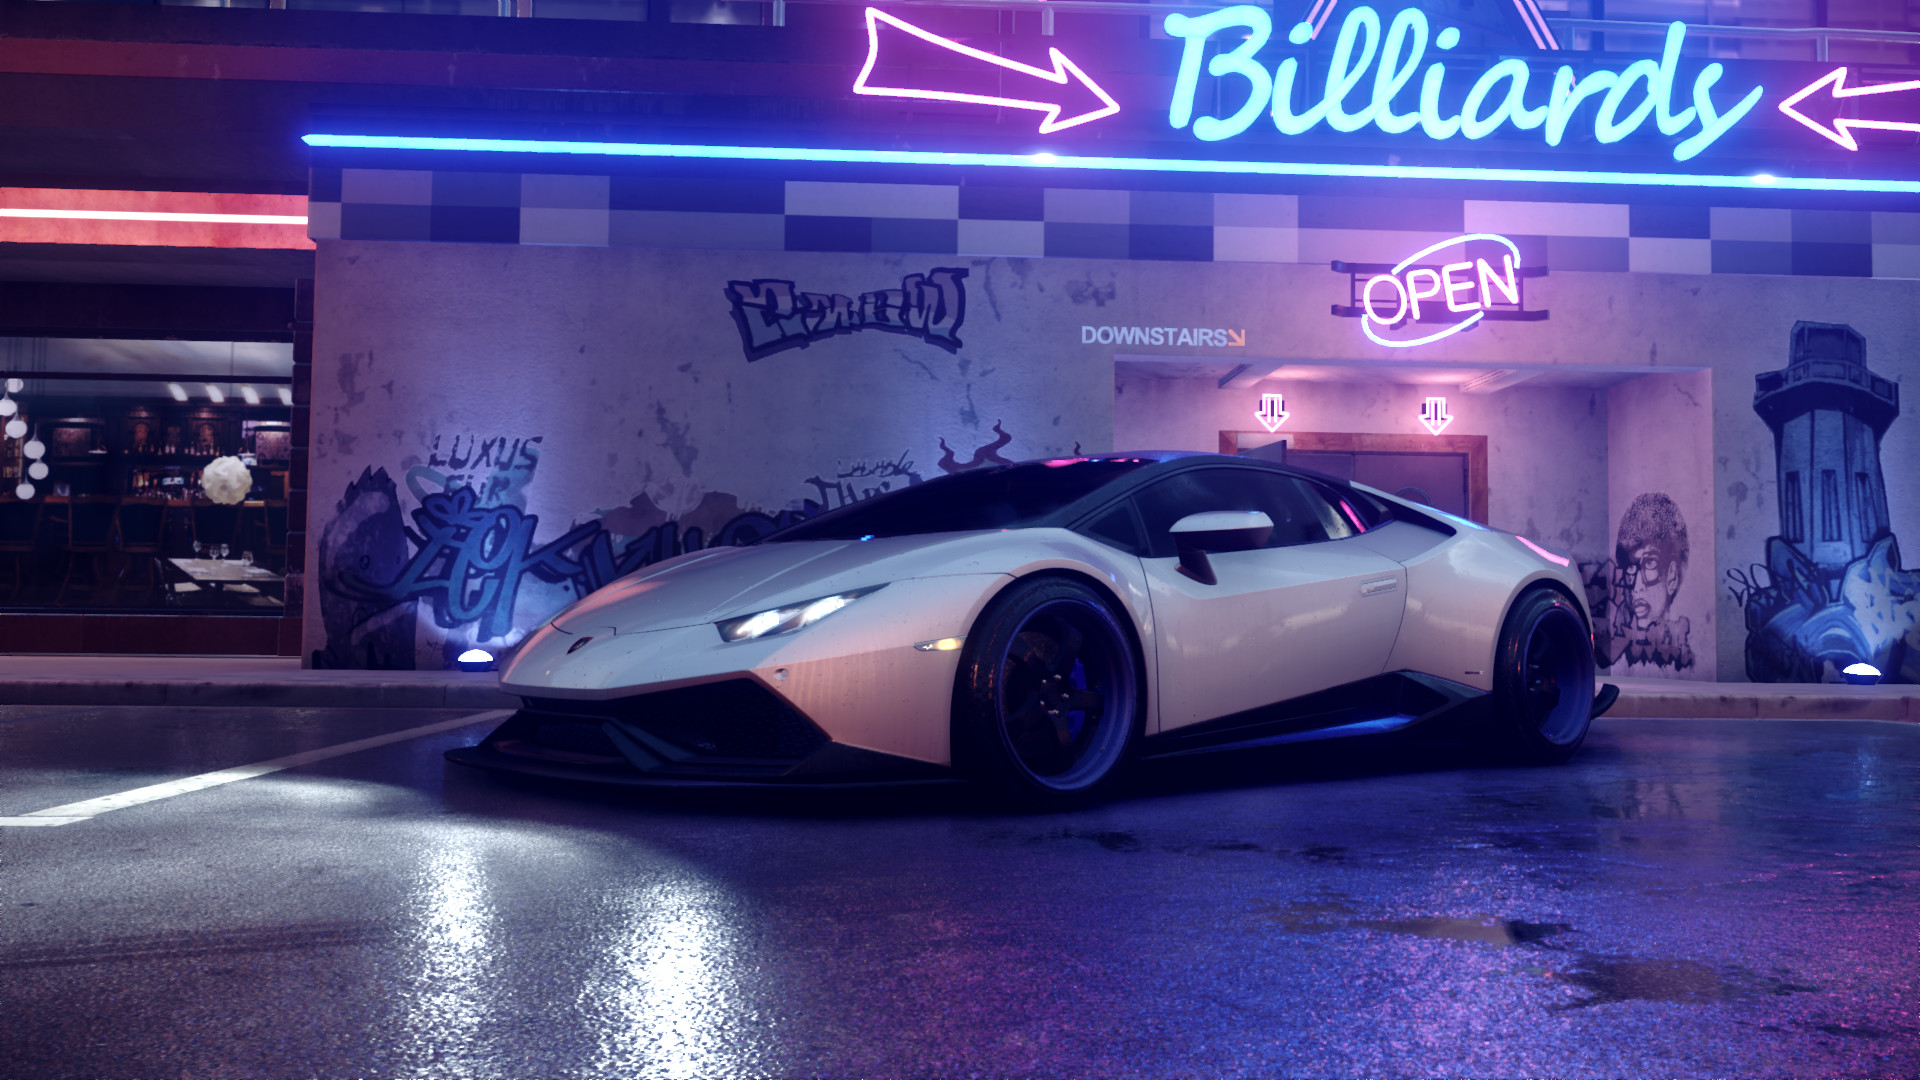 sarathonux-kor-need-for-speed-20160508163308 Fabulous Lamborghini Huracan Need for Speed 2015 Cars Trend